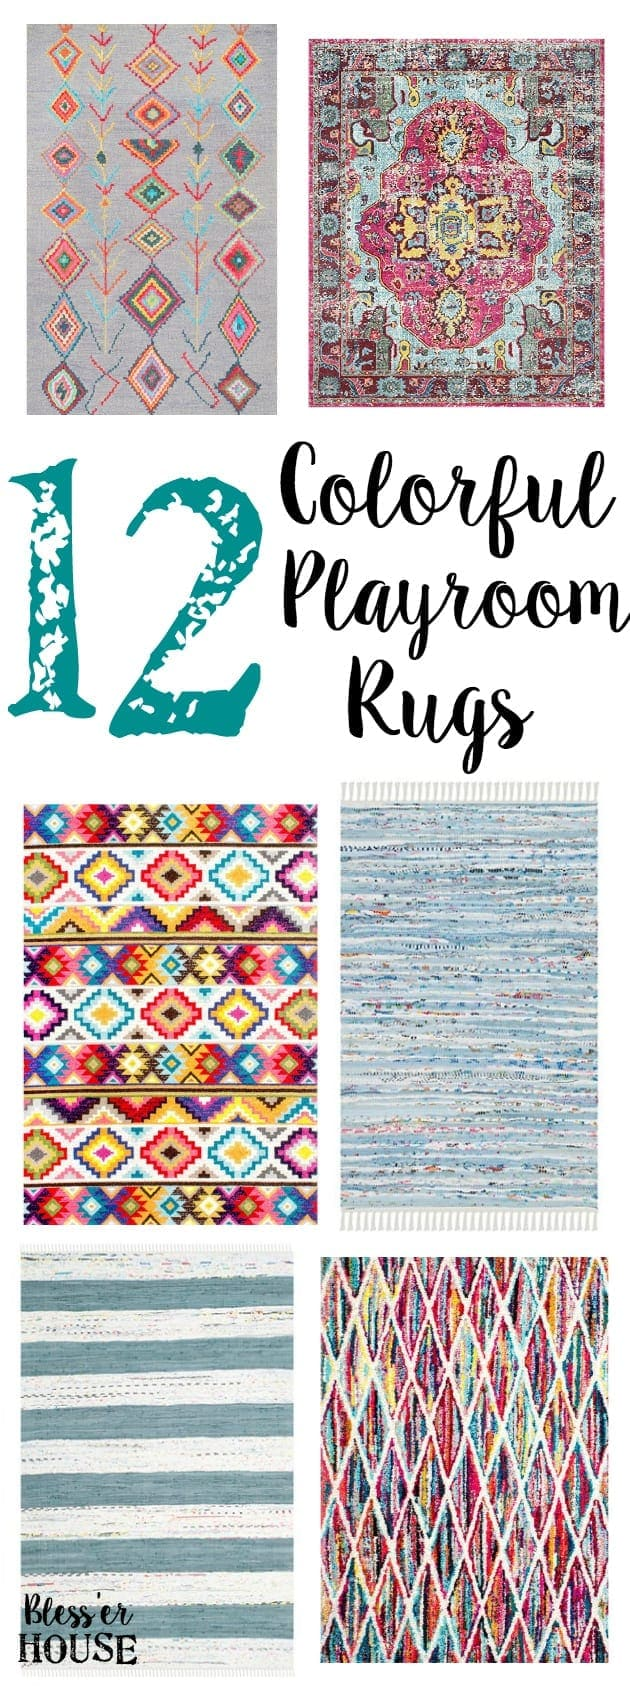 12 Colorful Playroom Rugs | blesserhouse.com - 12 colorful playroom rugs that could work in any casual and fun-loving space, even for a small budget.